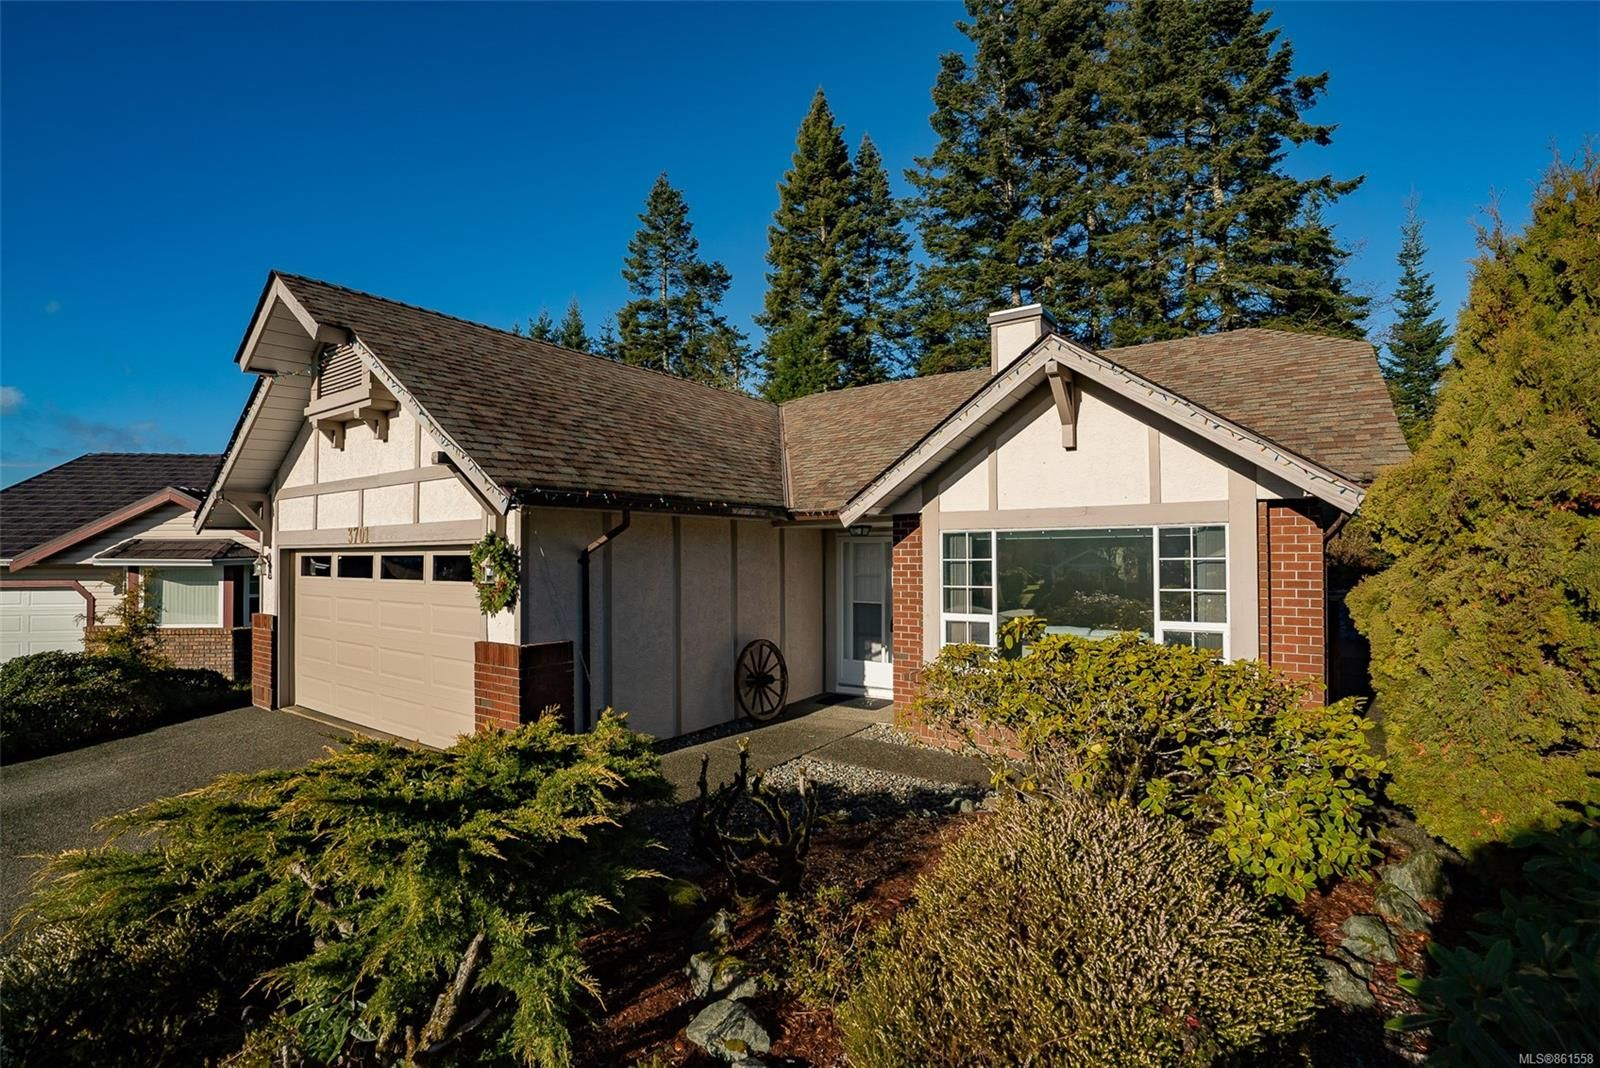 Main Photo: 3701 N Arbutus Dr in : ML Cobble Hill House for sale (Malahat & Area)  : MLS®# 861558